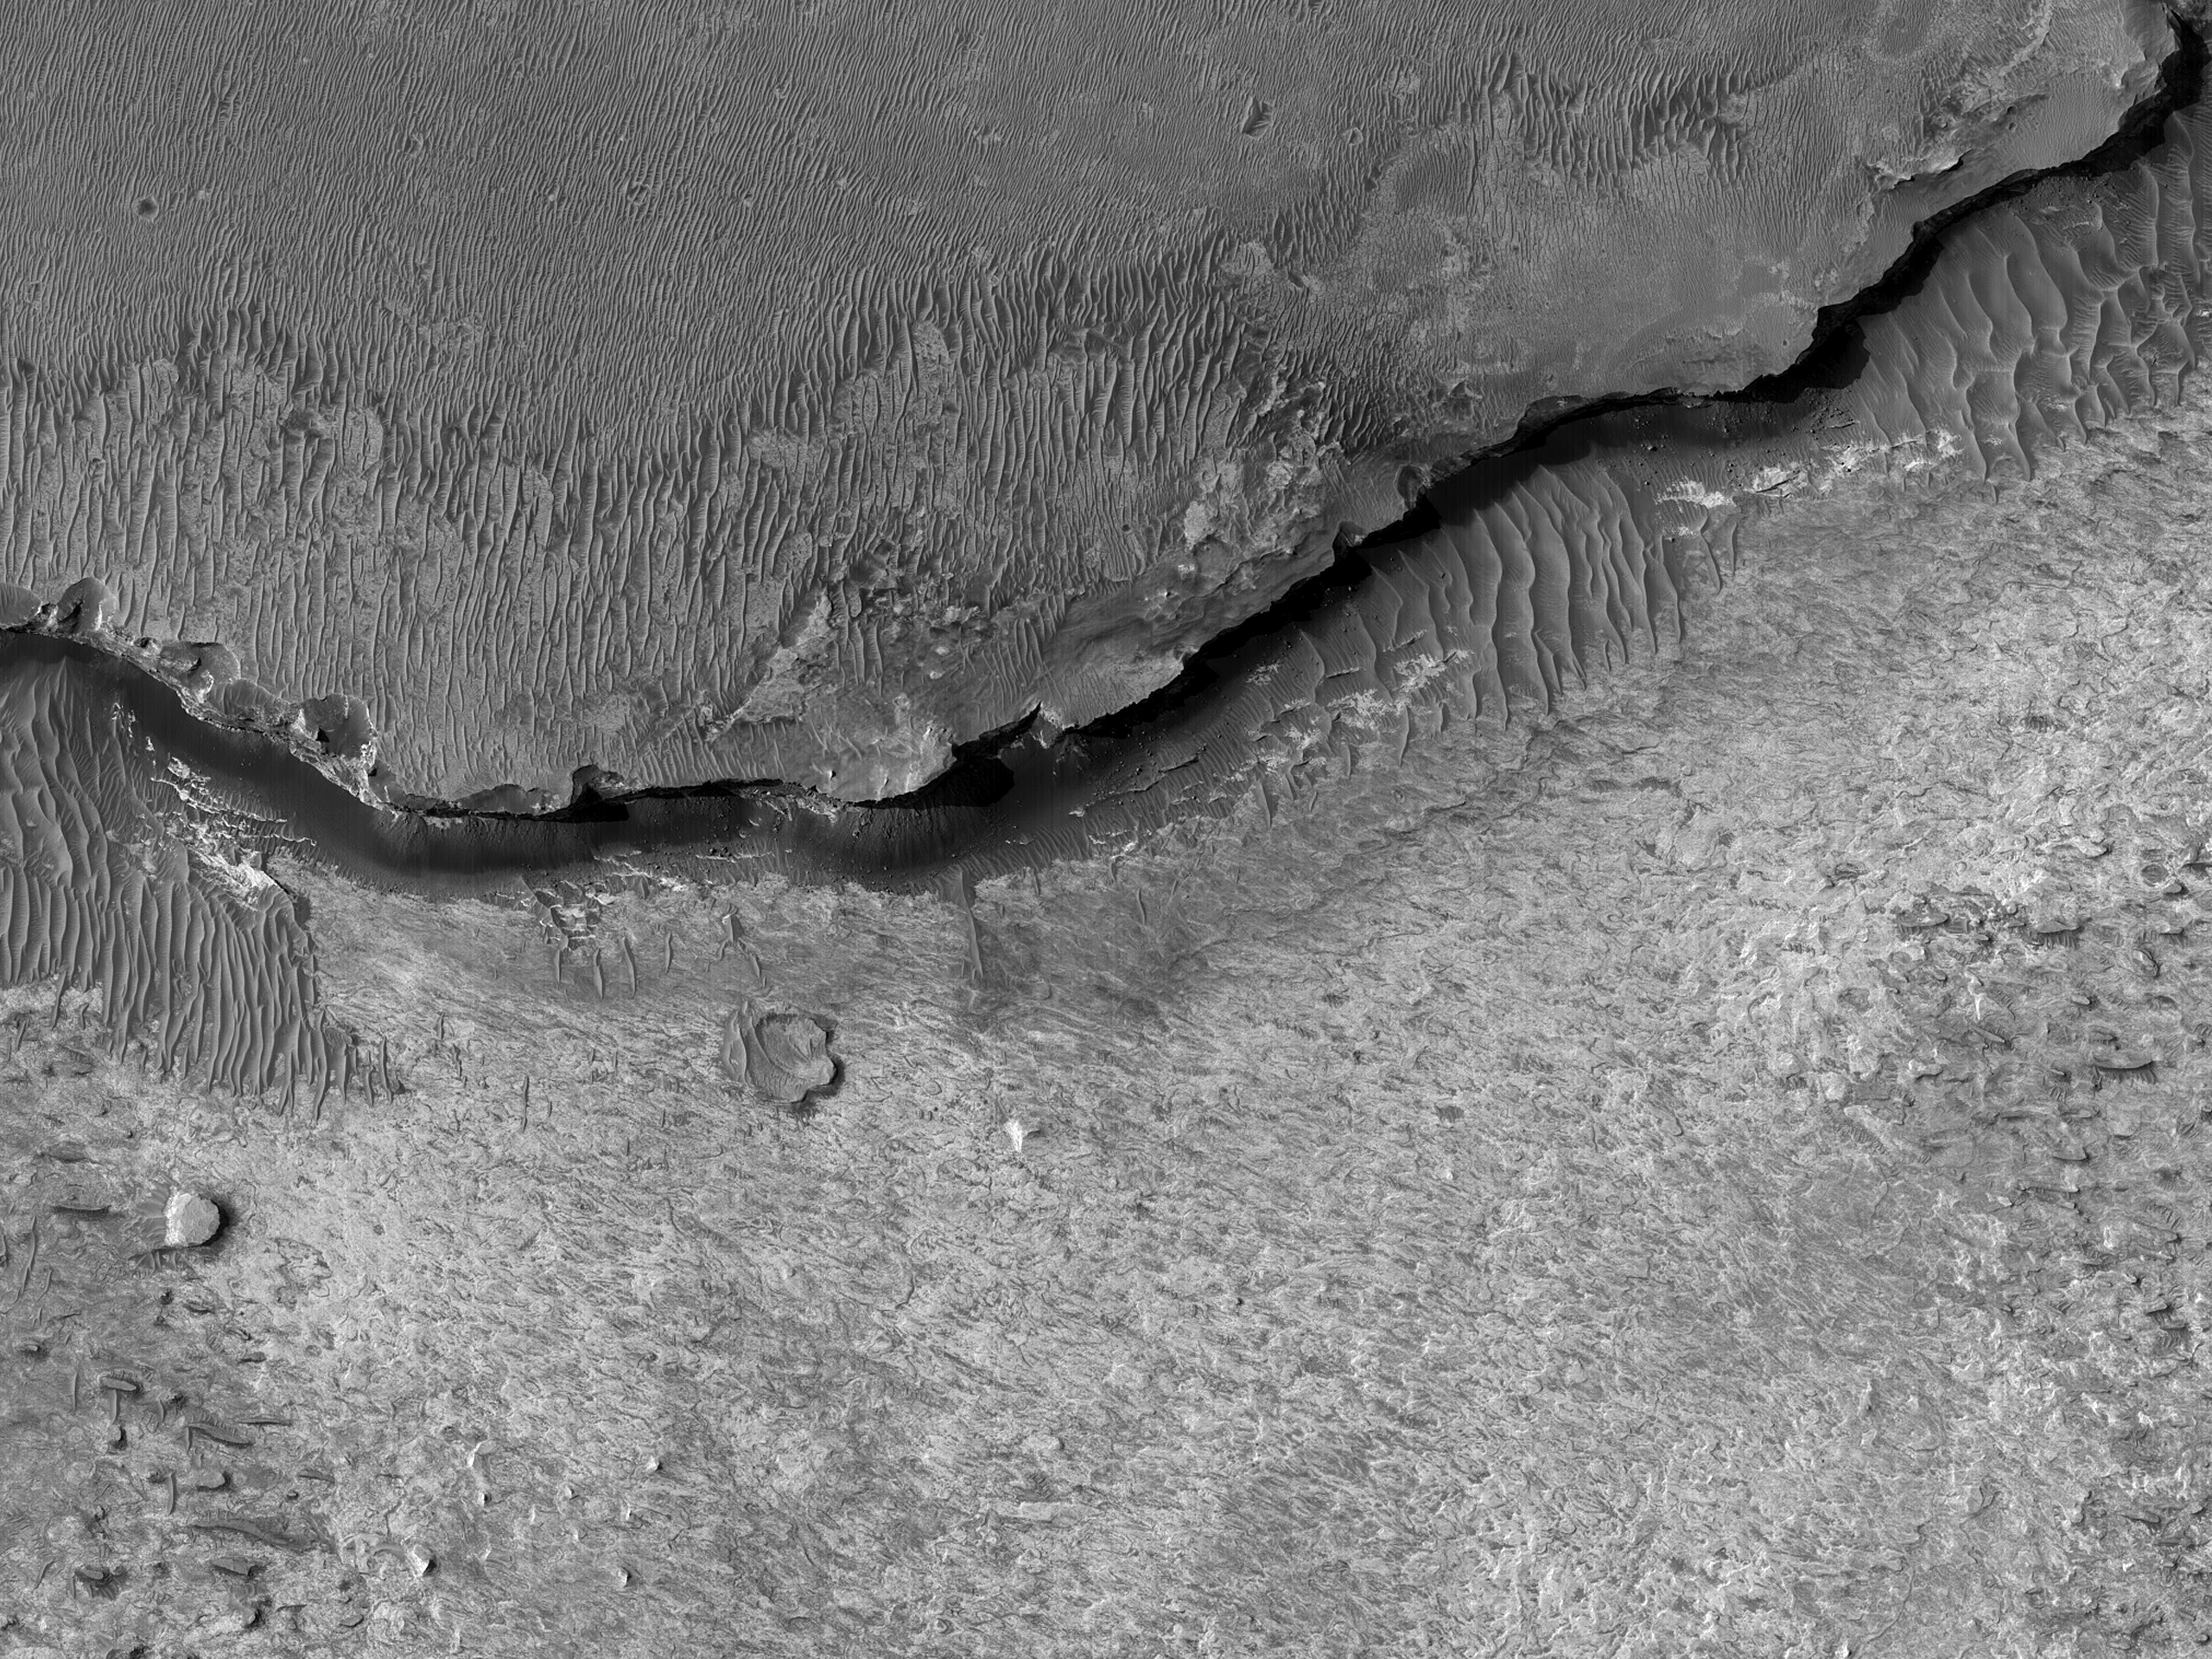 Shelf Above Hematite Region in Meridiani Planum